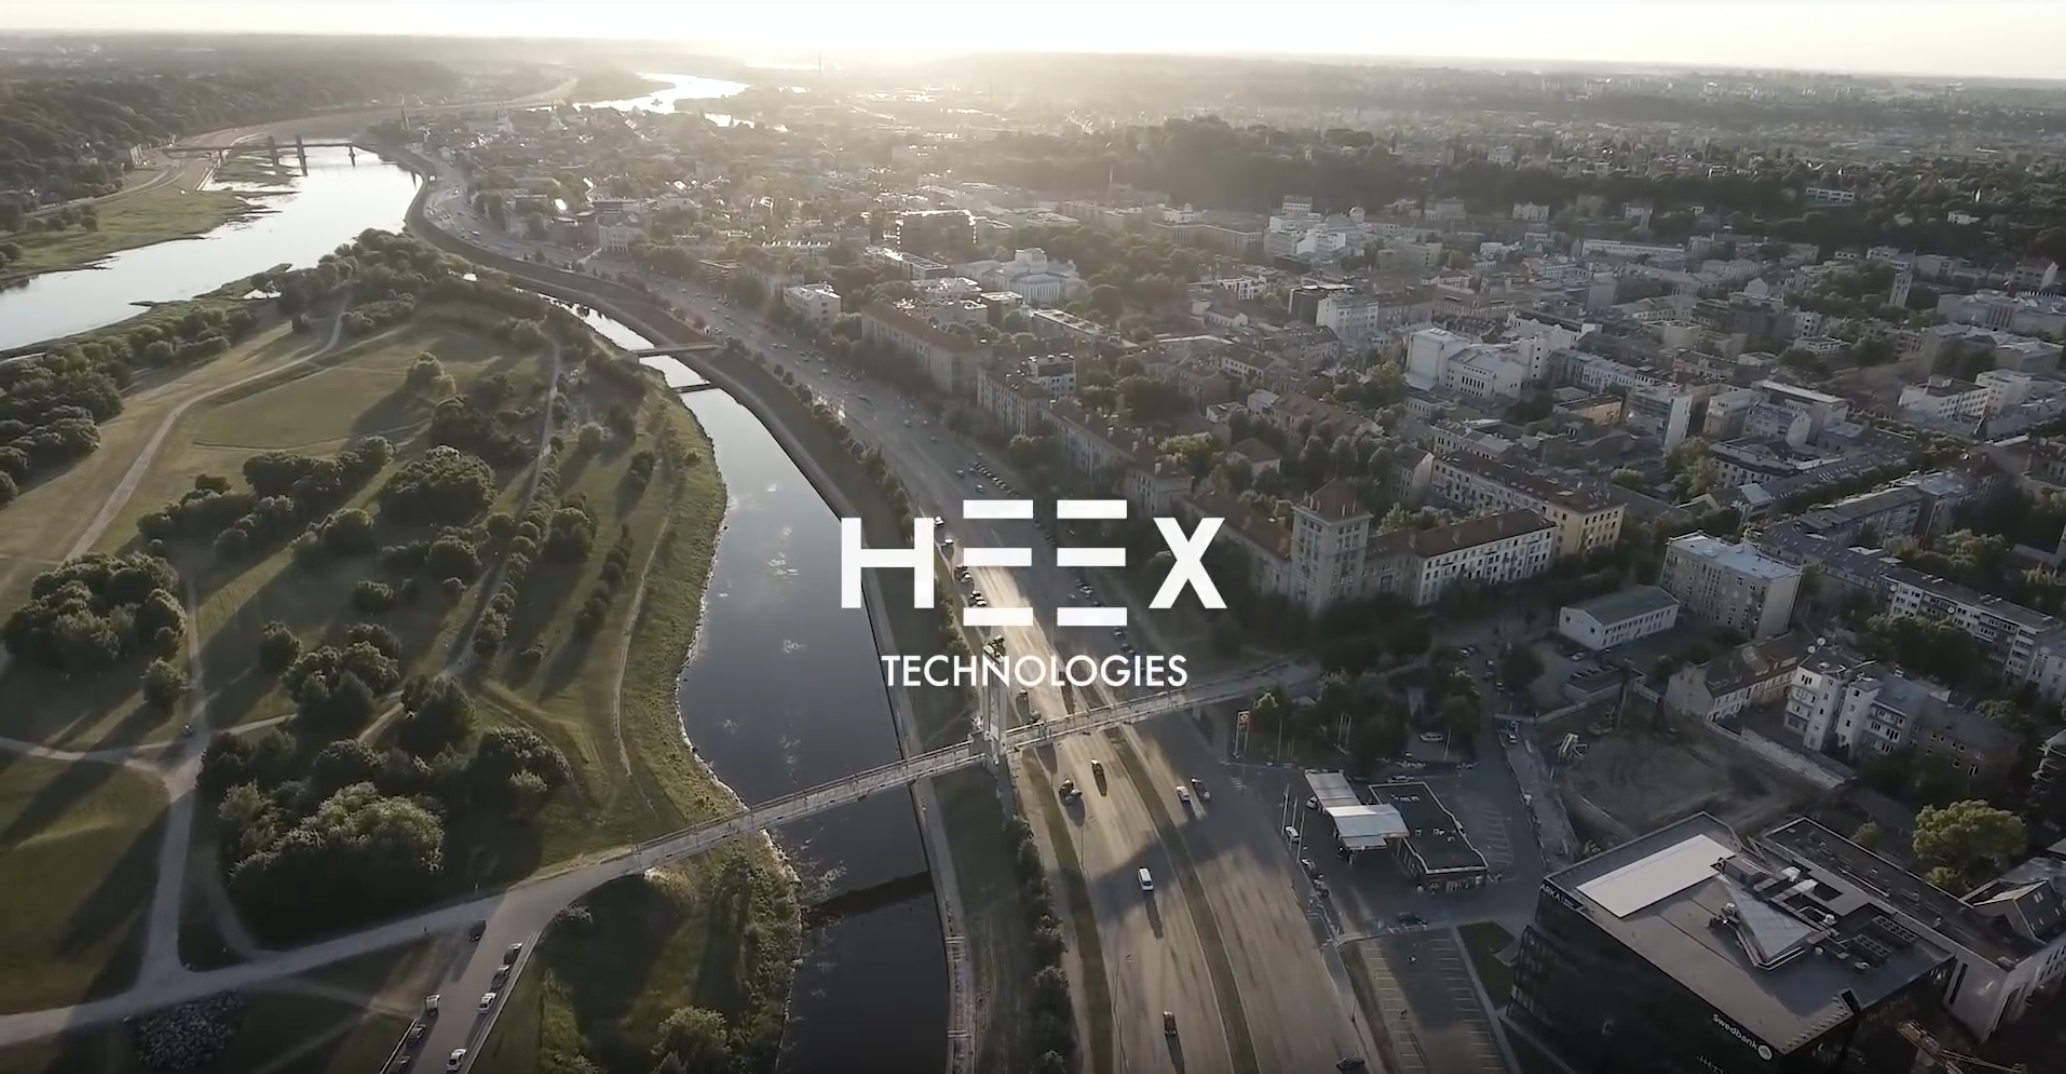 Introduction to Heex Technologies